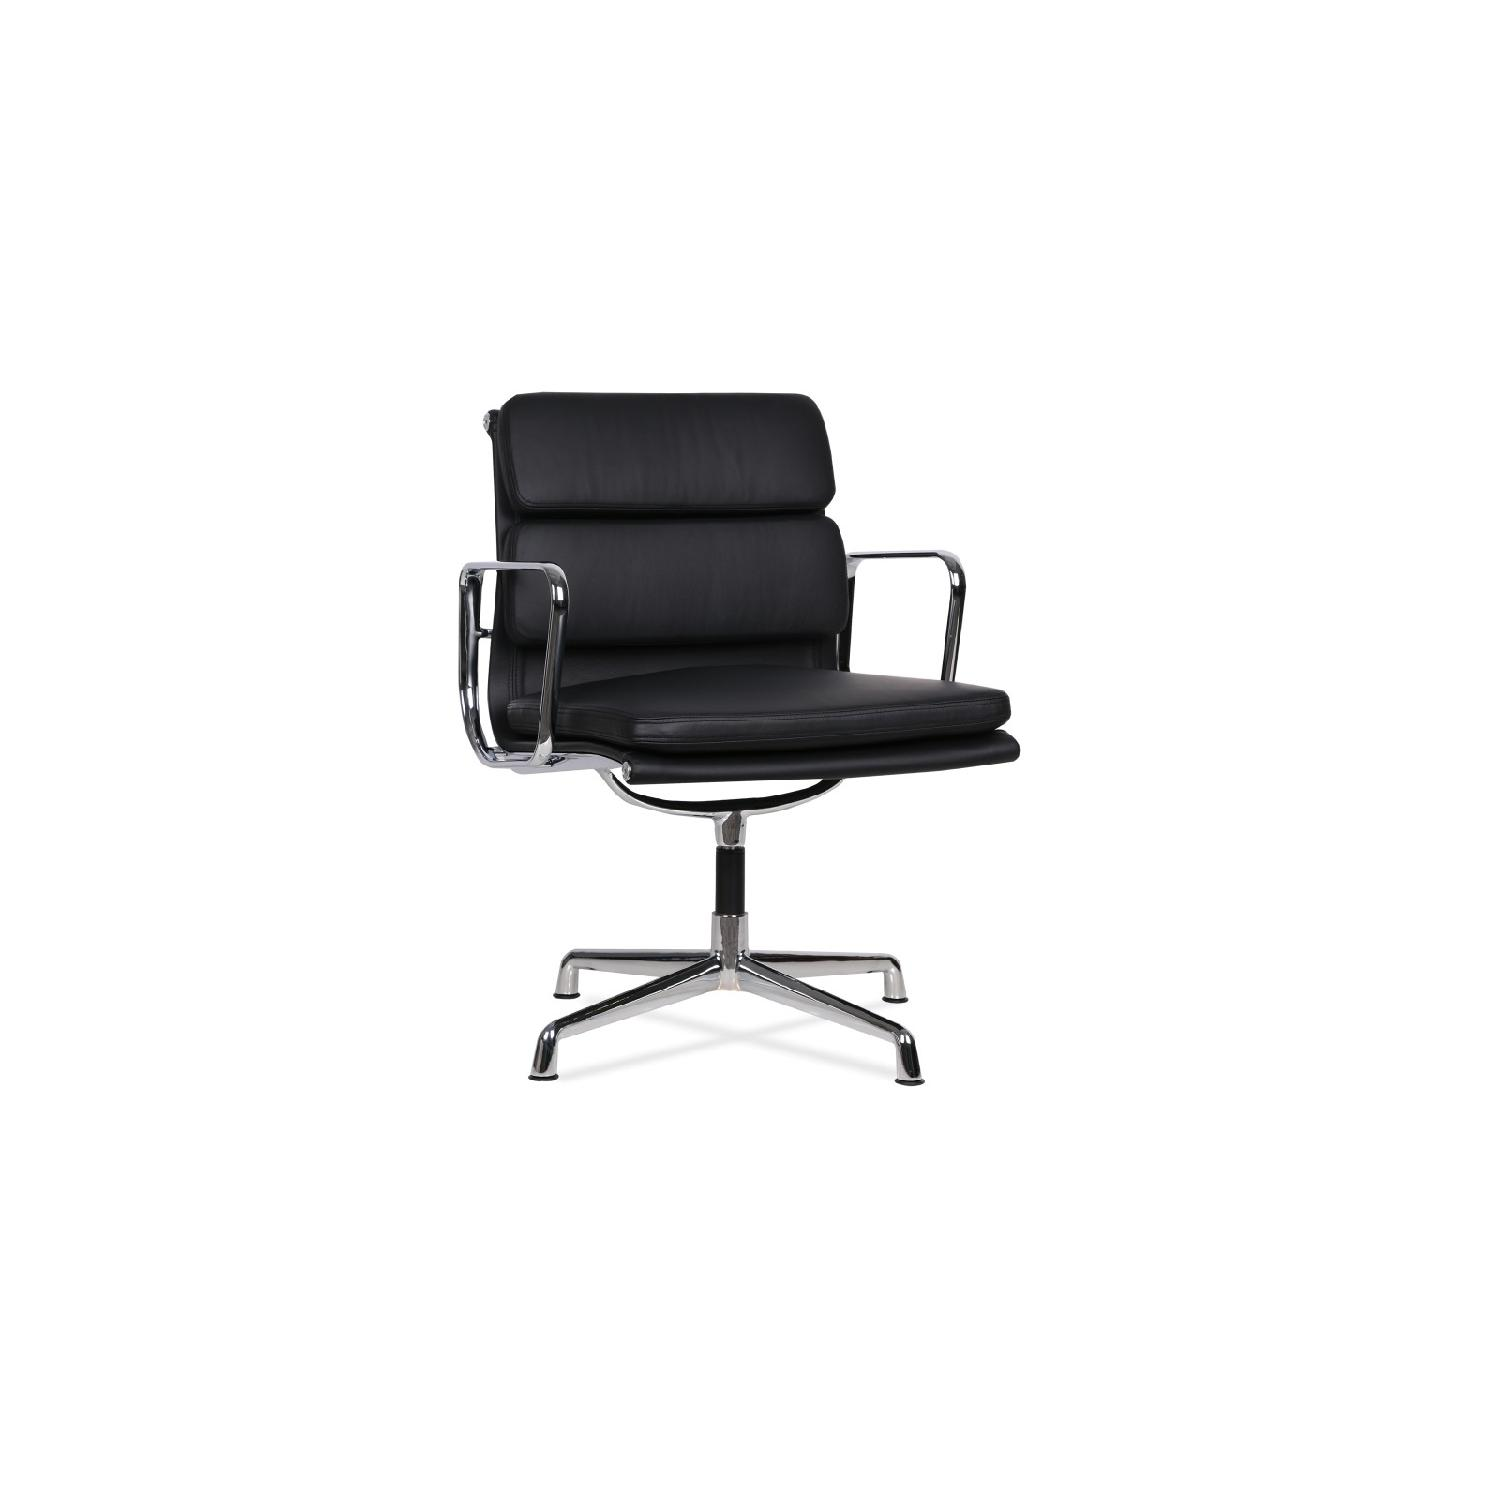 Aluminum Group Style Softpad Management Chair Replica in Black